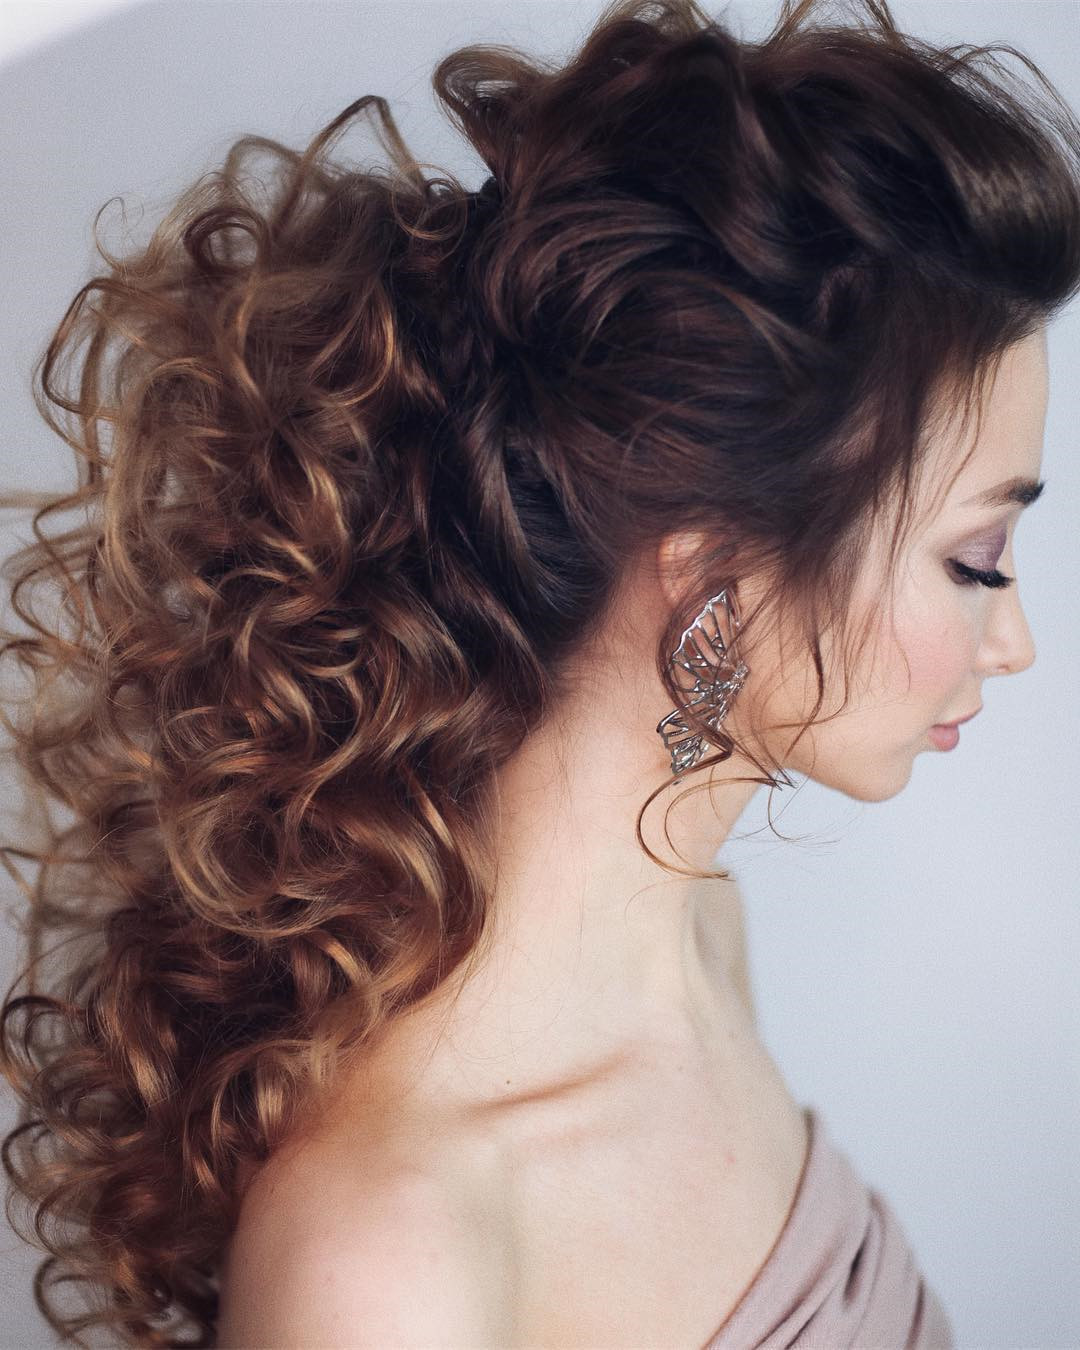 50 Trendy Tips to Have Beautiful Hair for Women